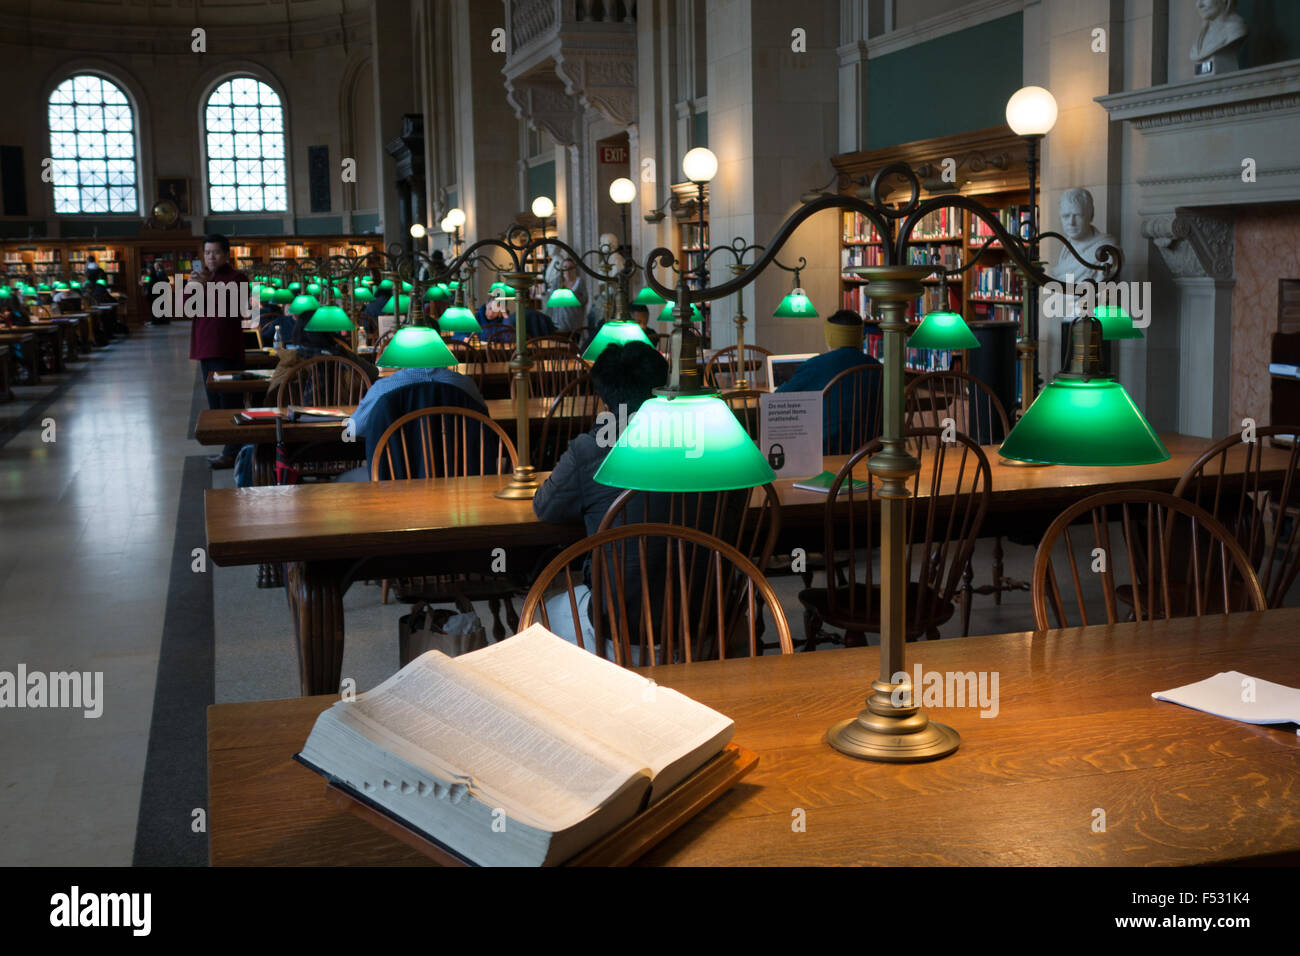 Superieur Boston Library Table Lamp McKim Reading Room